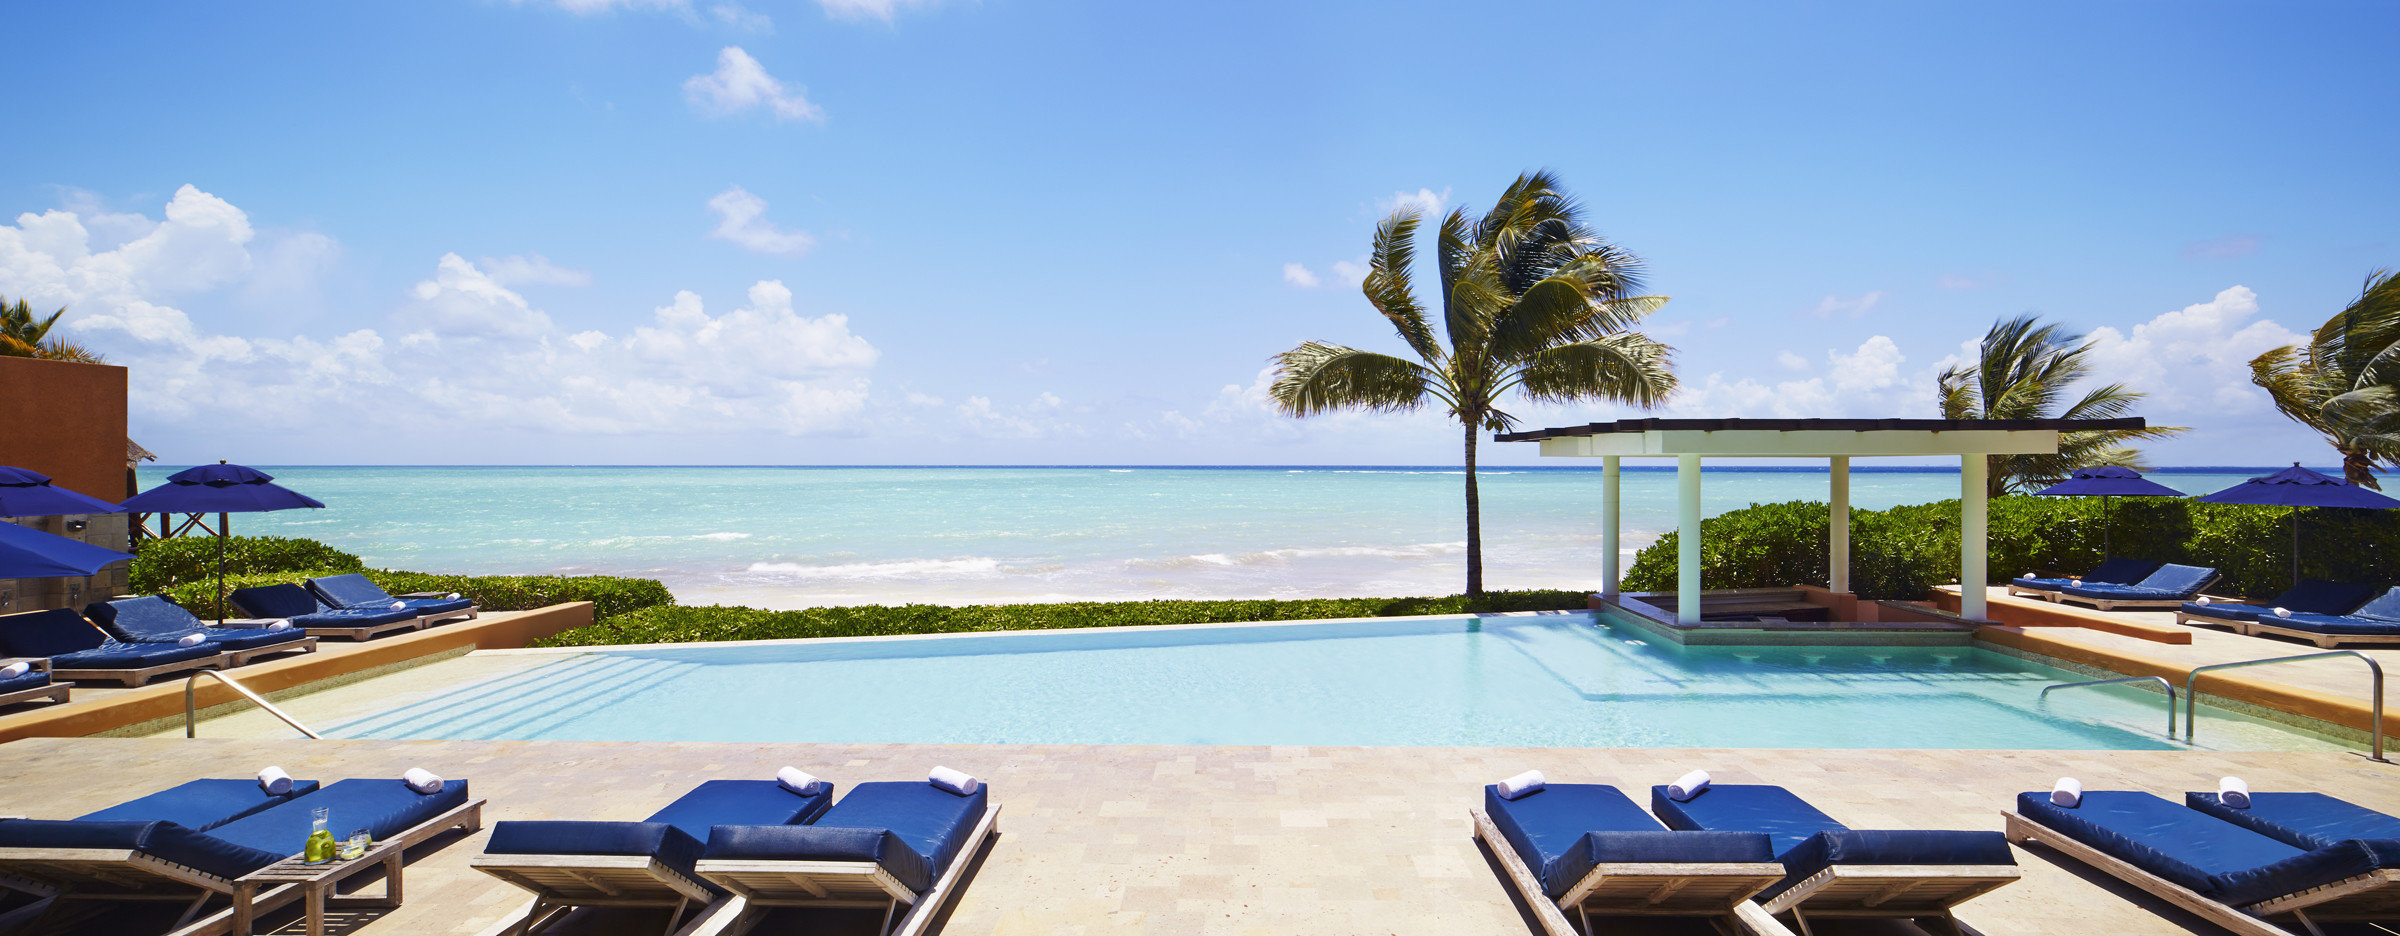 Hotels Romance sky water outdoor leisure swimming pool property Beach Resort vacation estate Villa caribbean real estate bay Deck day shore